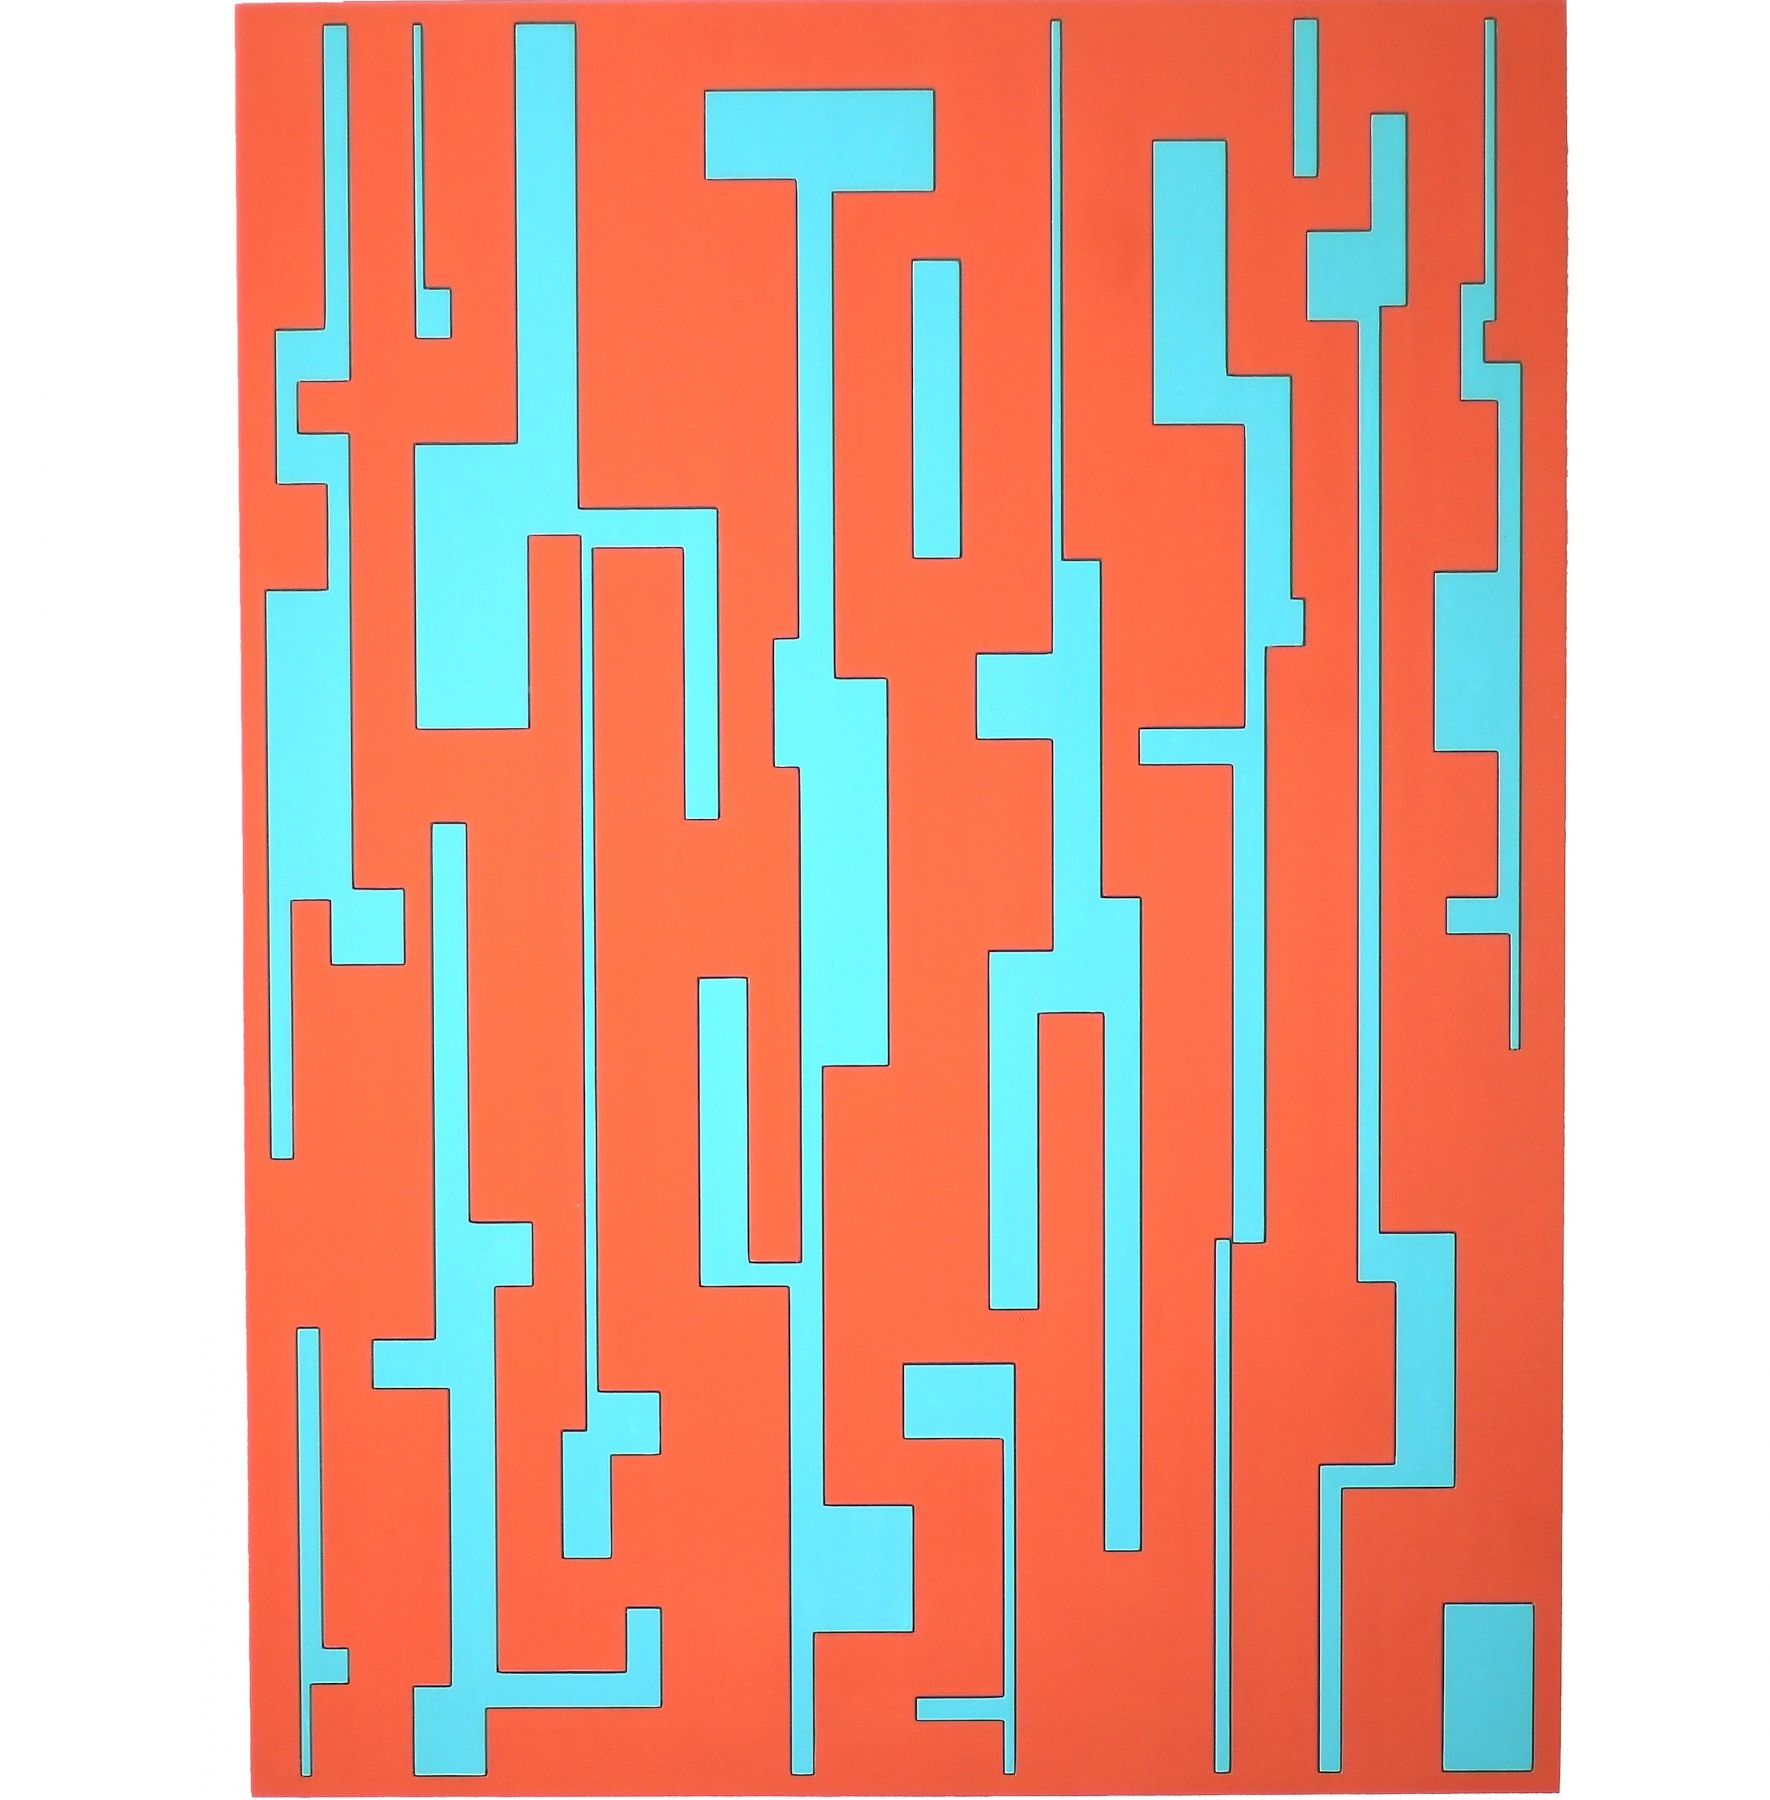 Yisus, 2018. Lacquer on MDF, 47 7/32 x 35 13/32 in. (120 x 90 cm.)